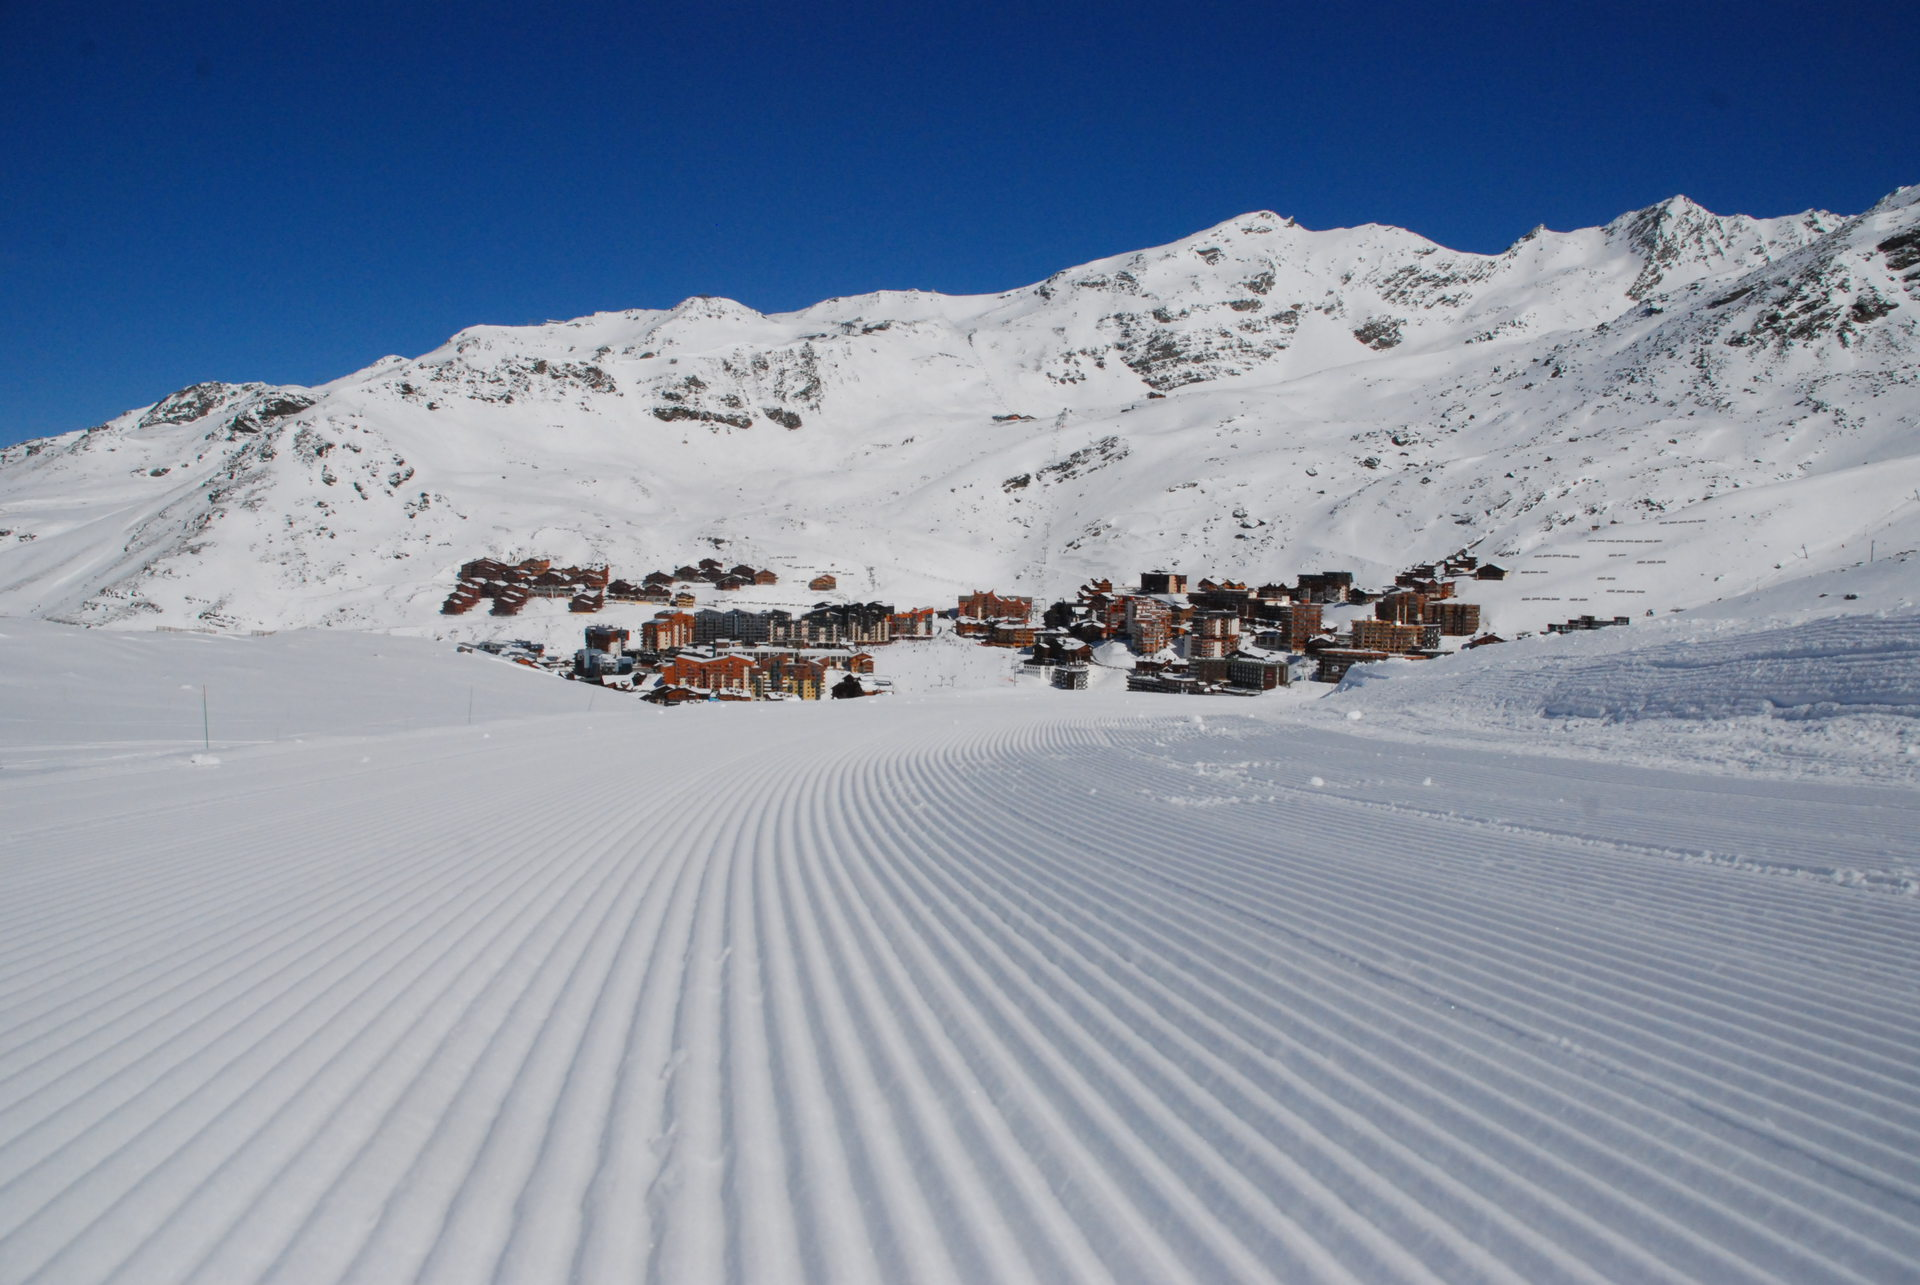 BOOK AN APARTMENT 5 PERSONS FOR THE KICK OFF OF THE WINTER SKI SEASON